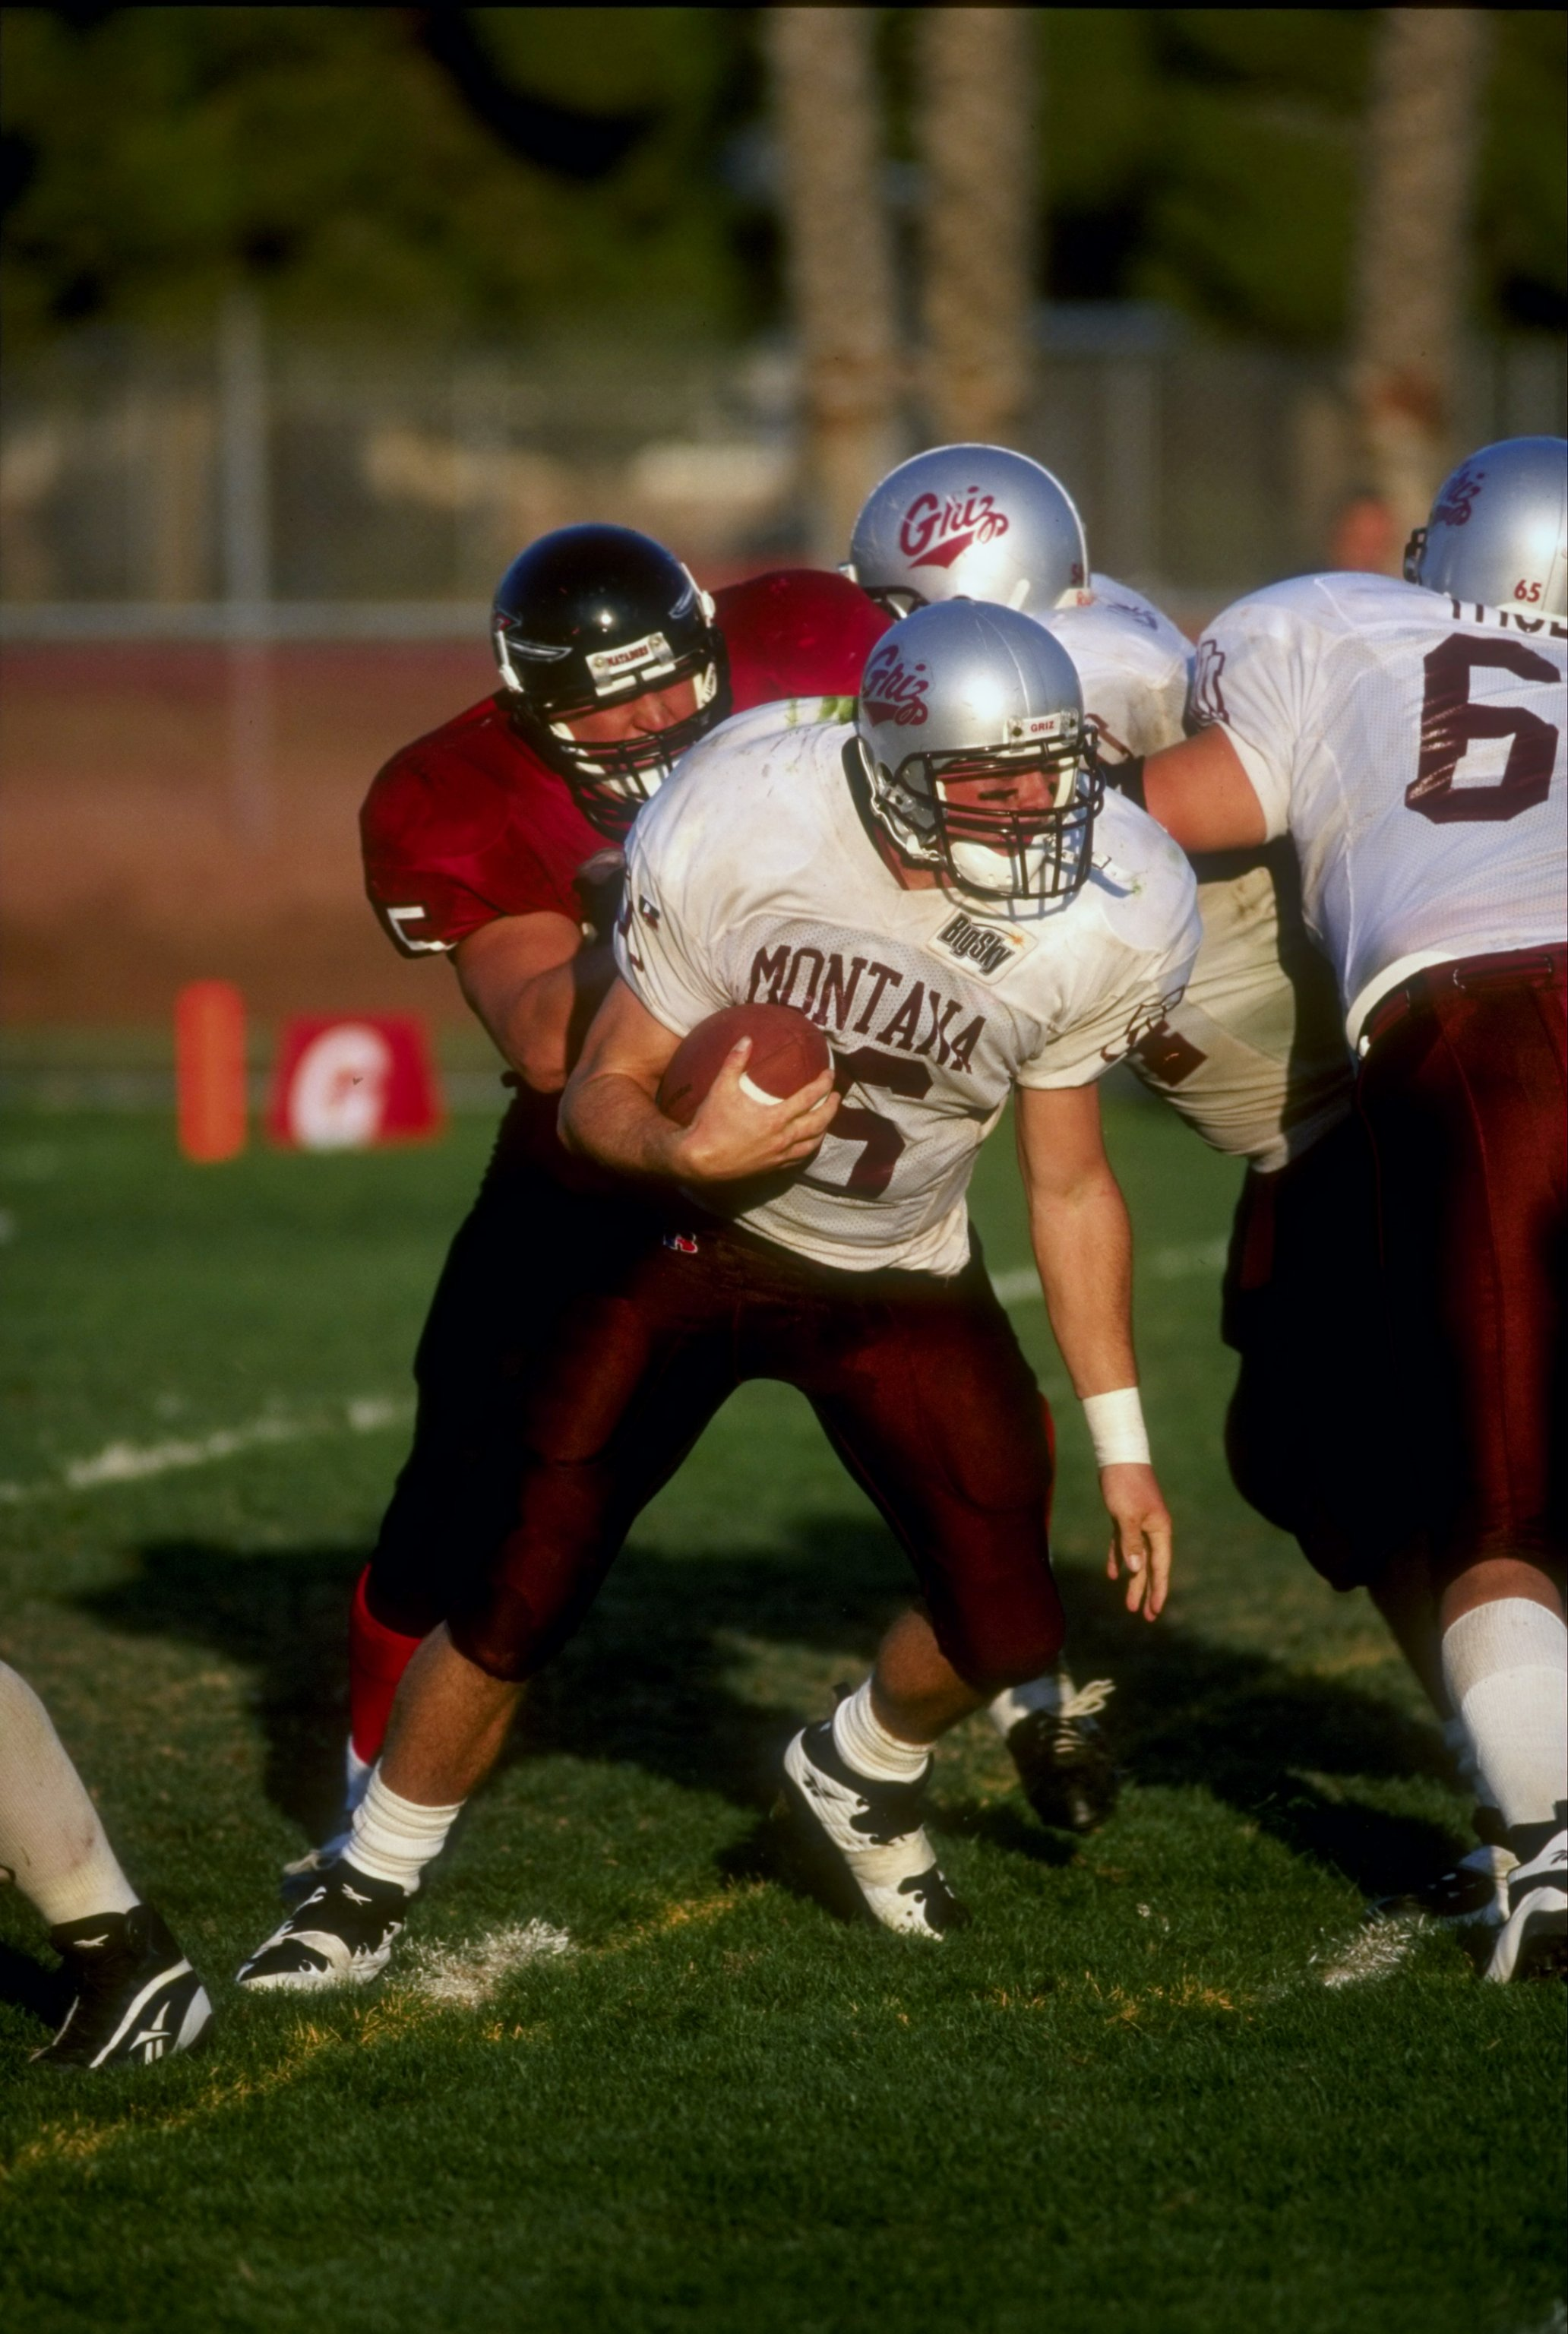 10 Oct 1998: Quarterback Sean Davis #16 of the Montana Grizzlies in action during the game against the CSUN Matadors at the North Campus Stadium in Northridge, California. The Matadors defeated the Grizzlies 21-7.